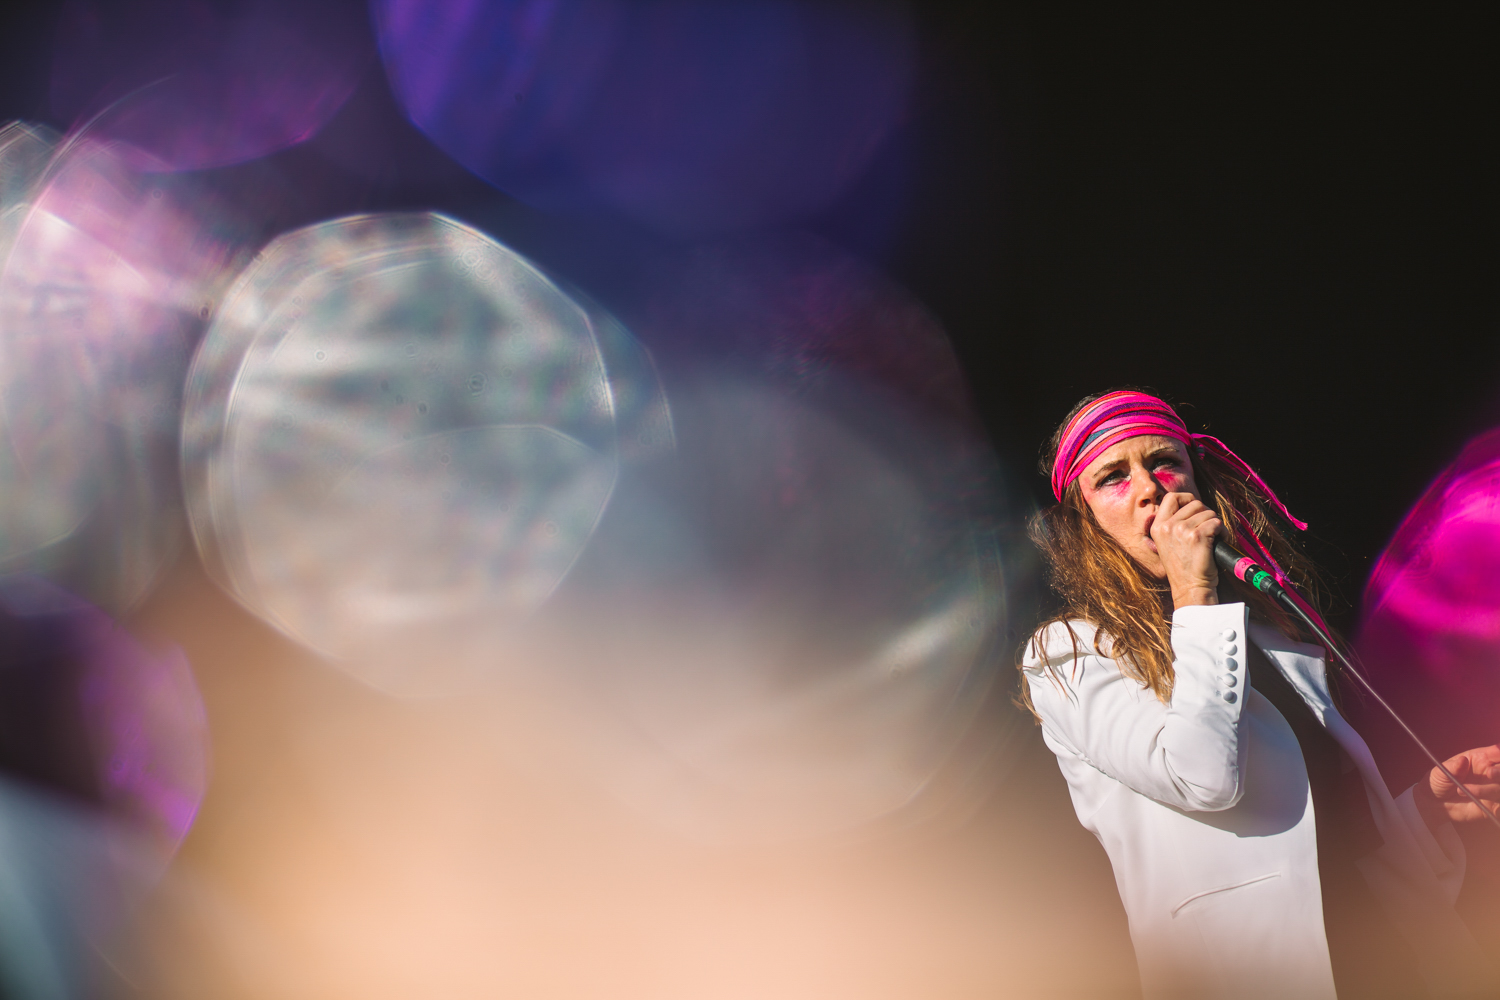 Juliette Lewis and the Licks at Rock the Shores, Concert Photography